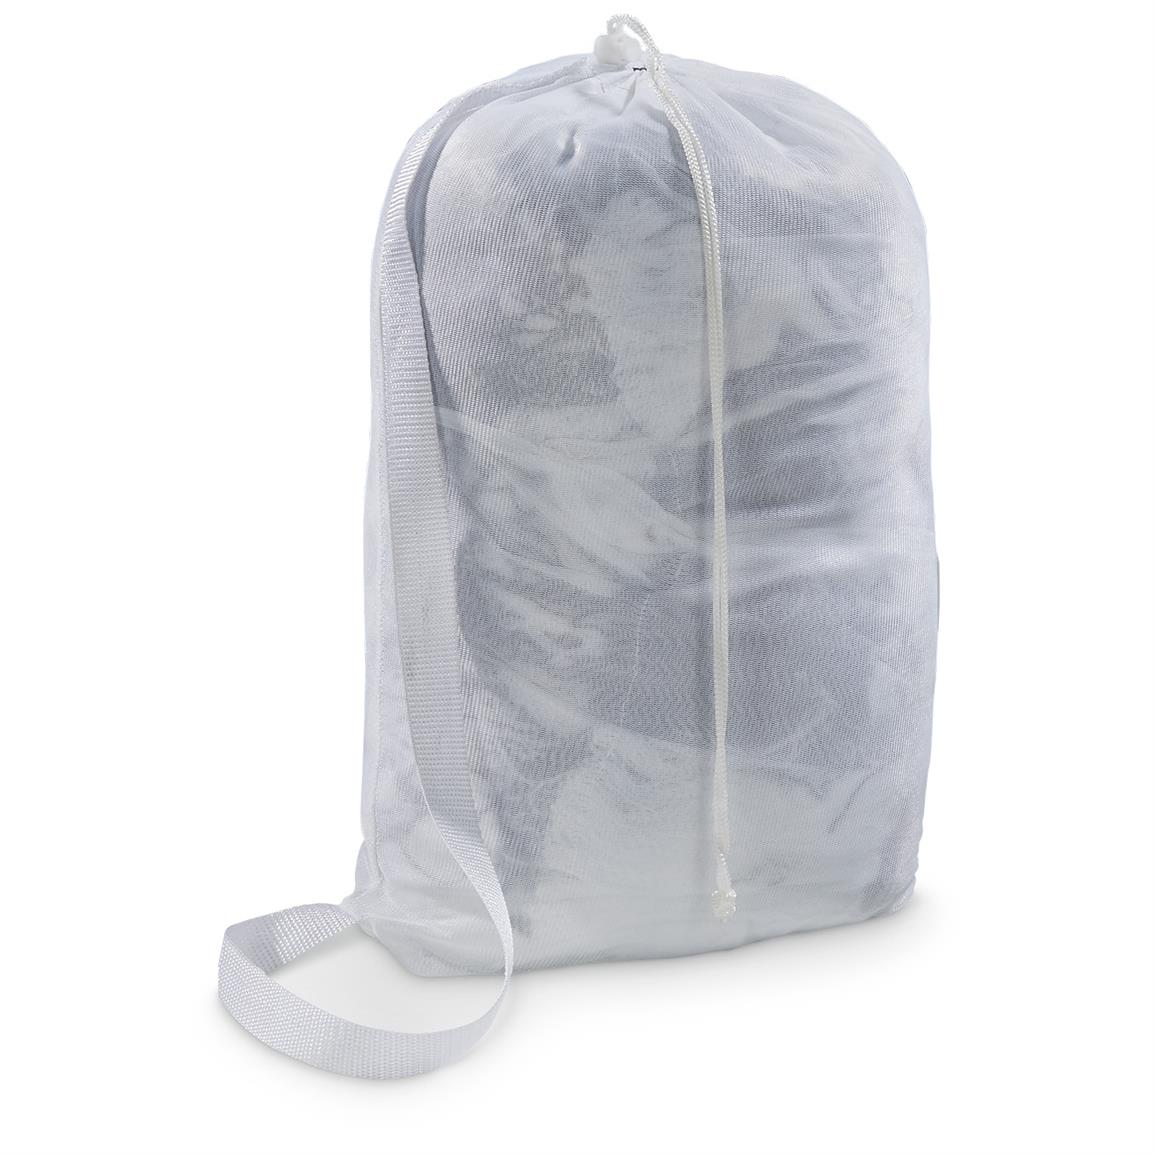 Includes storage bag; Snow Camo